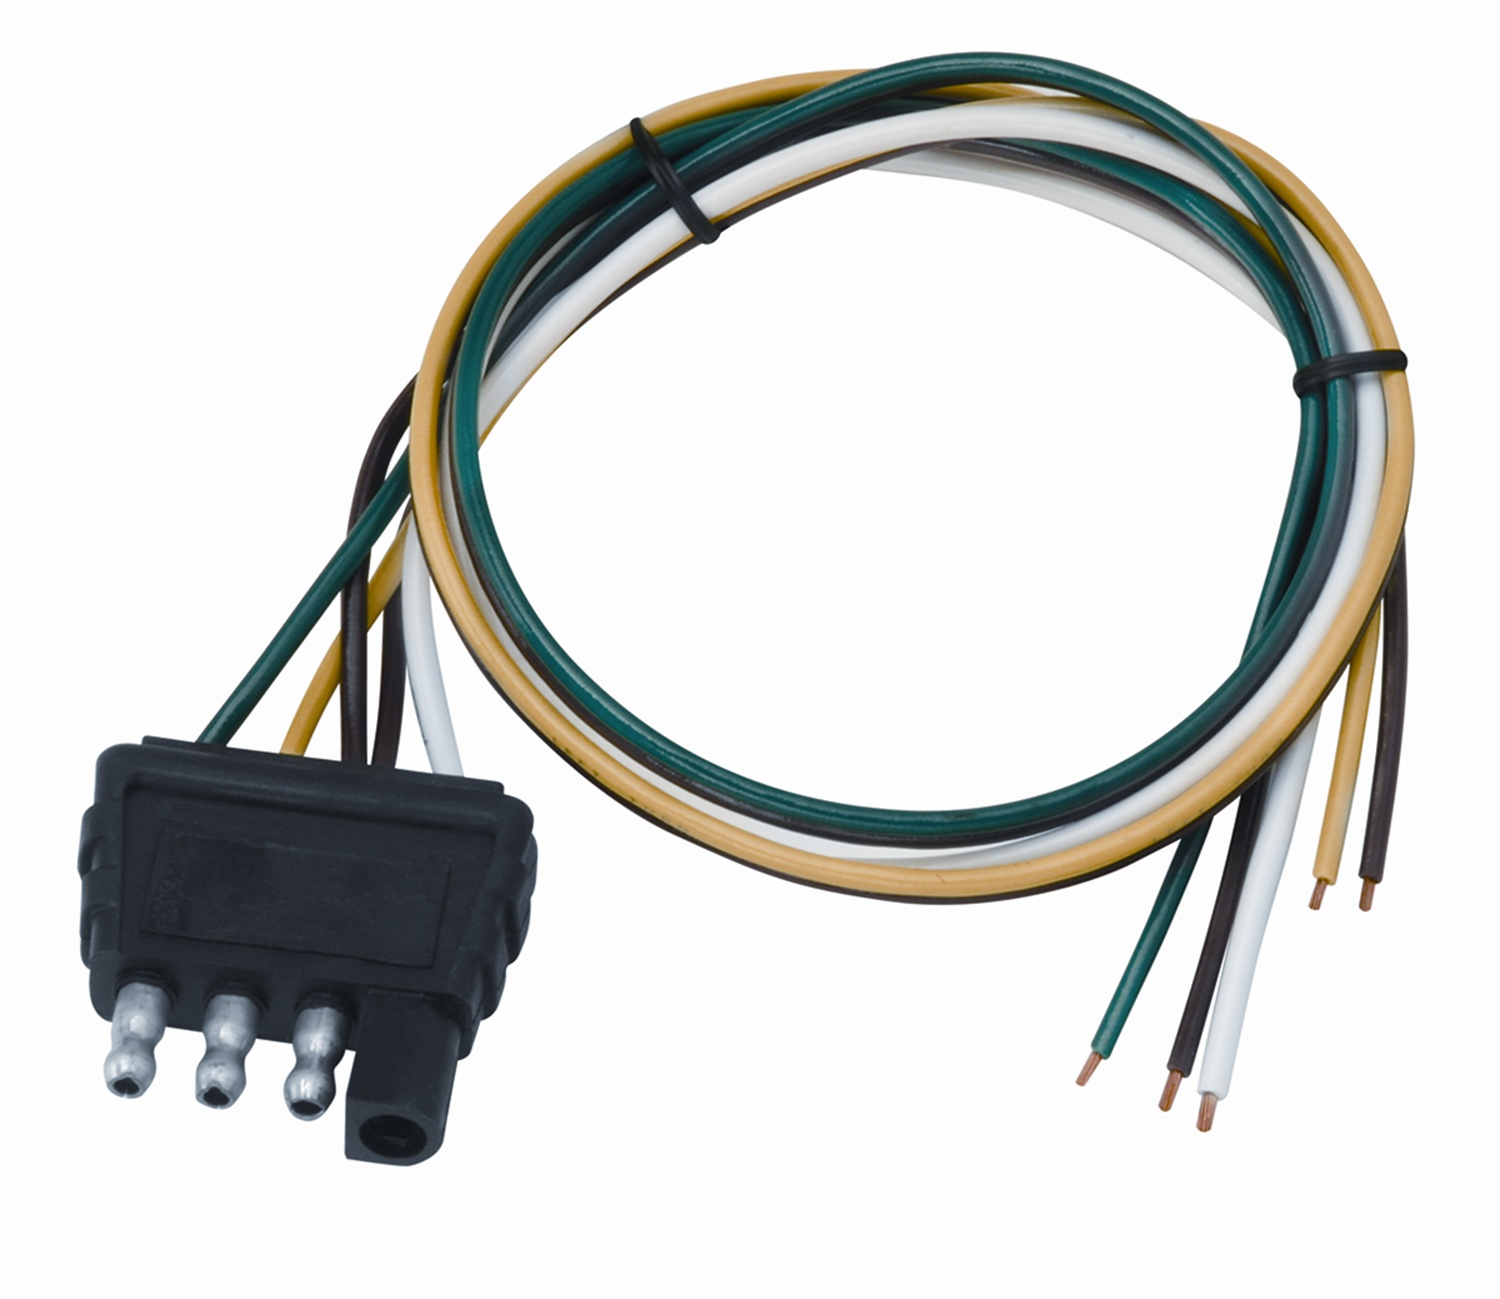 Tremendous Boat Trailer Wiring Harness Kit Basic Electronics Wiring Diagram Wiring Digital Resources Cettecompassionincorg